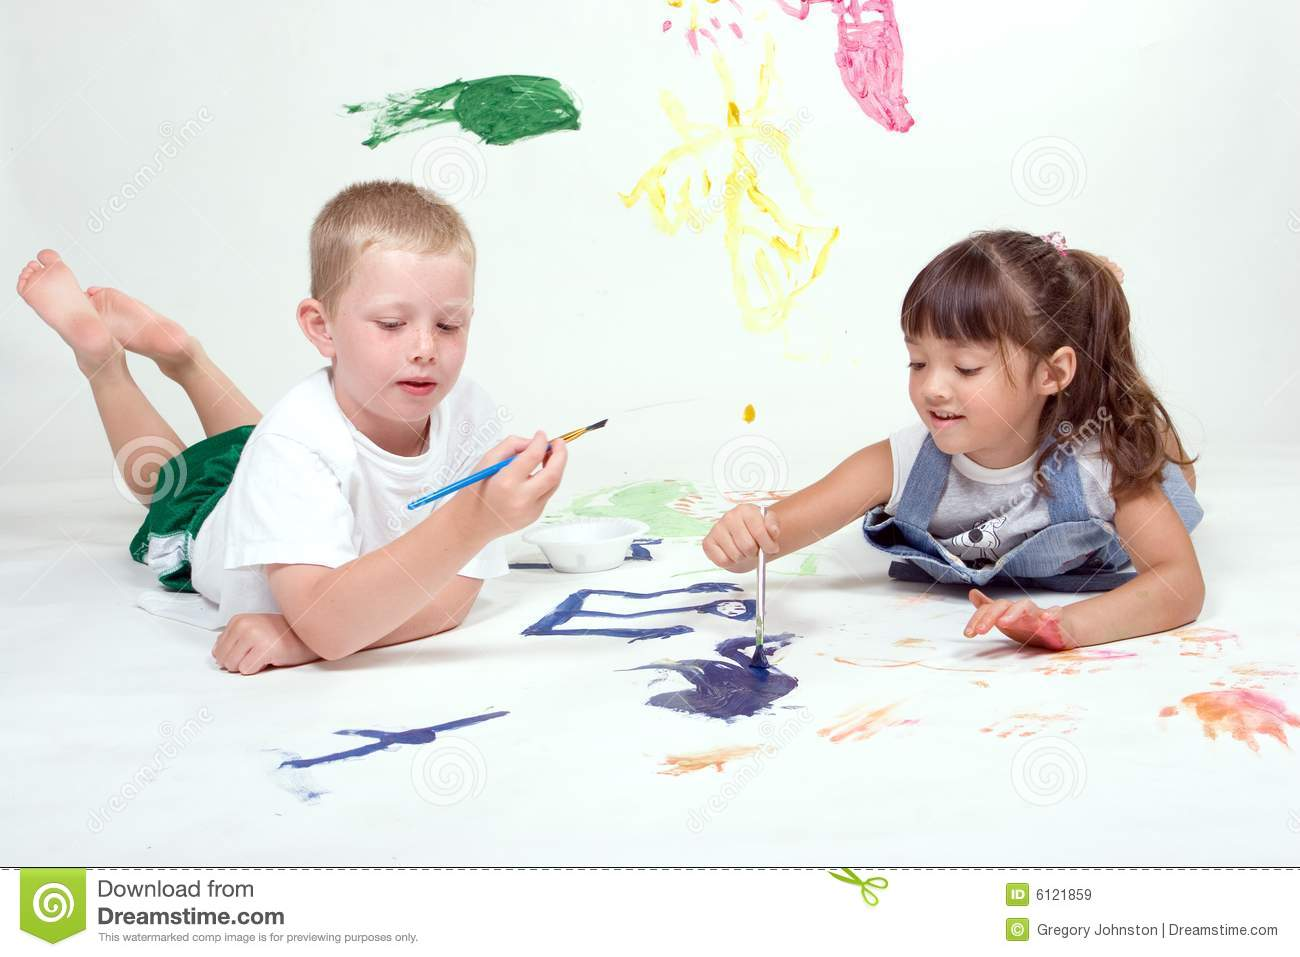 Two Kids Are Painting Pictures. Stock Image - Image of painter, draw ...